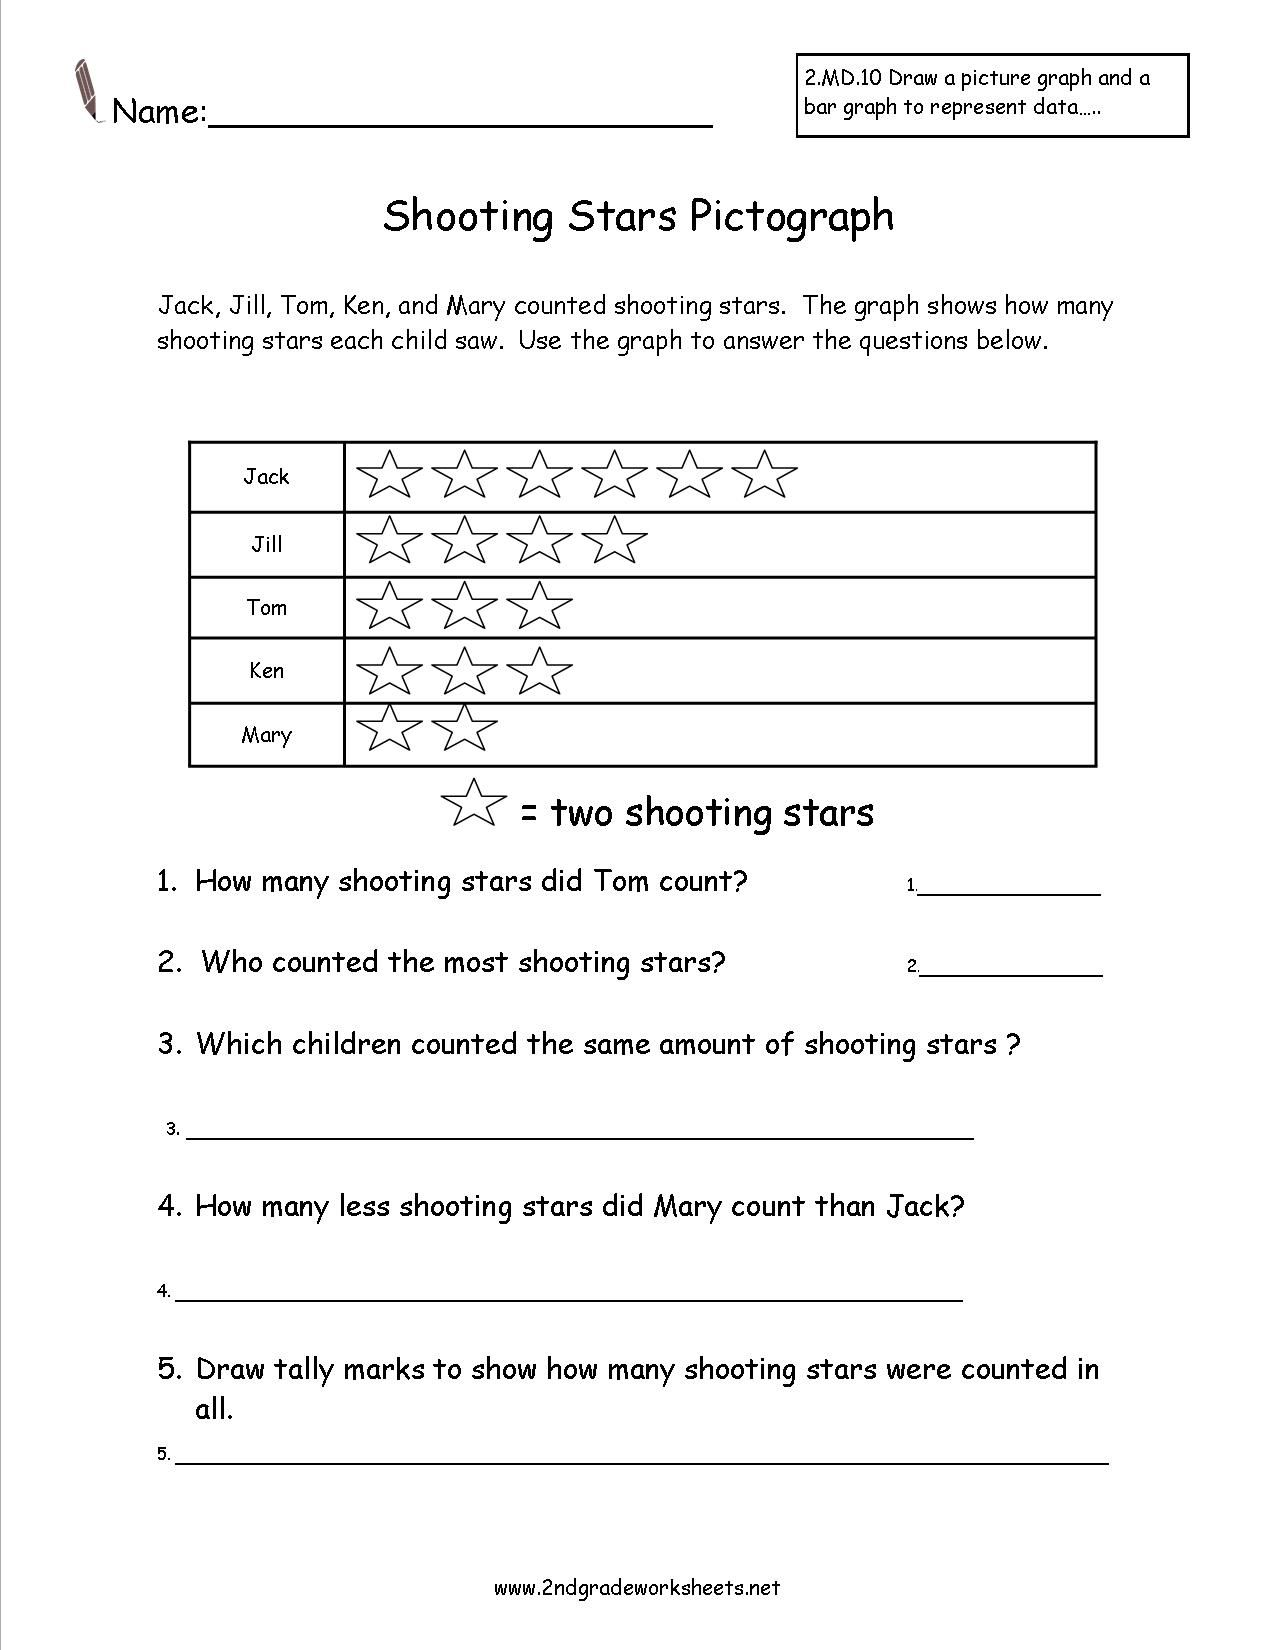 Uncategorized Pictographs Worksheets shooting stars pictograph worksheet teaching pinterest worksheet